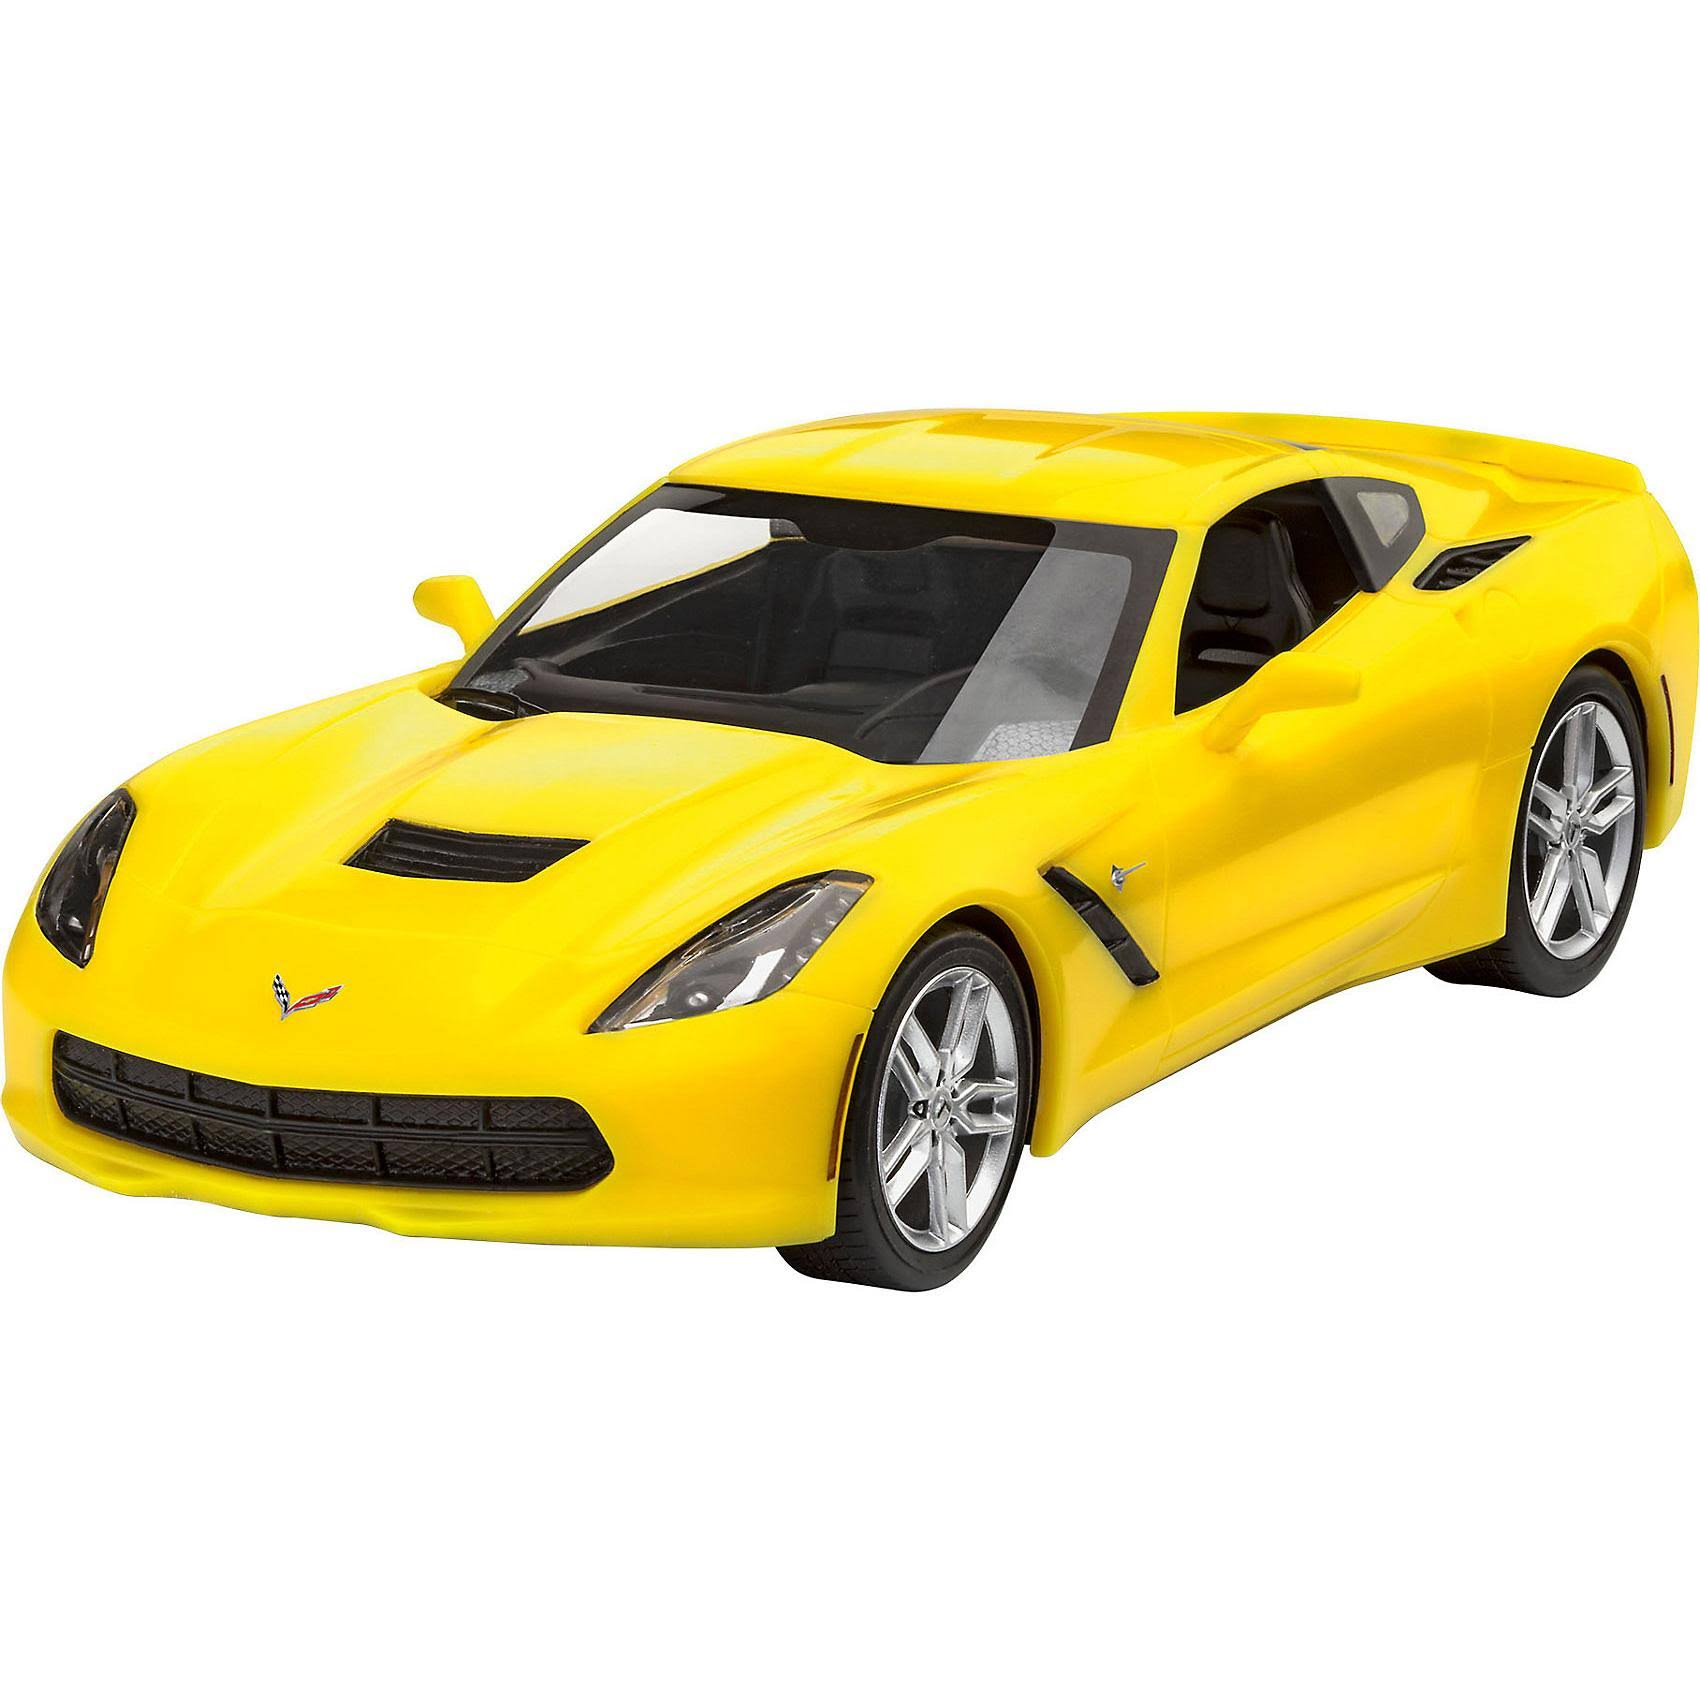 Revell 07449 2014 Corvette Stingray